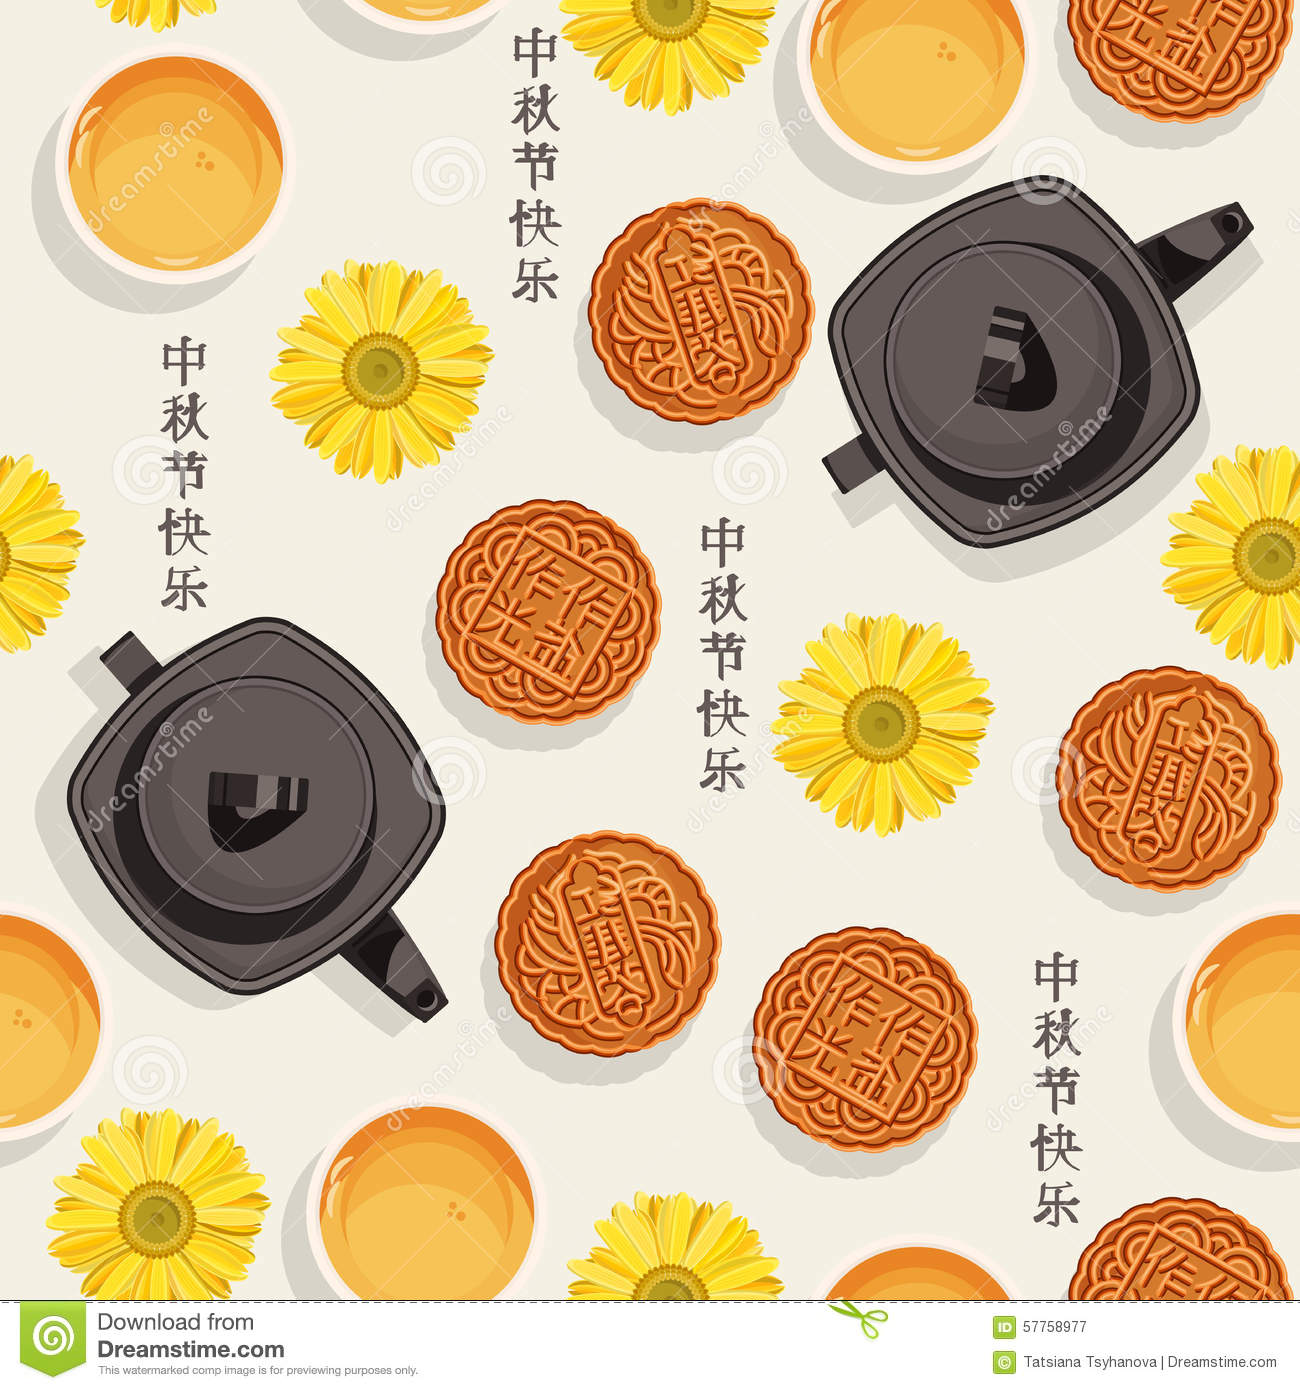 Seamless pattern with chinese tea teapot cups moon cakes flower seamless pattern with chinese tea teapot cups moon cakes flower for mid autumn festival kristyandbryce Choice Image